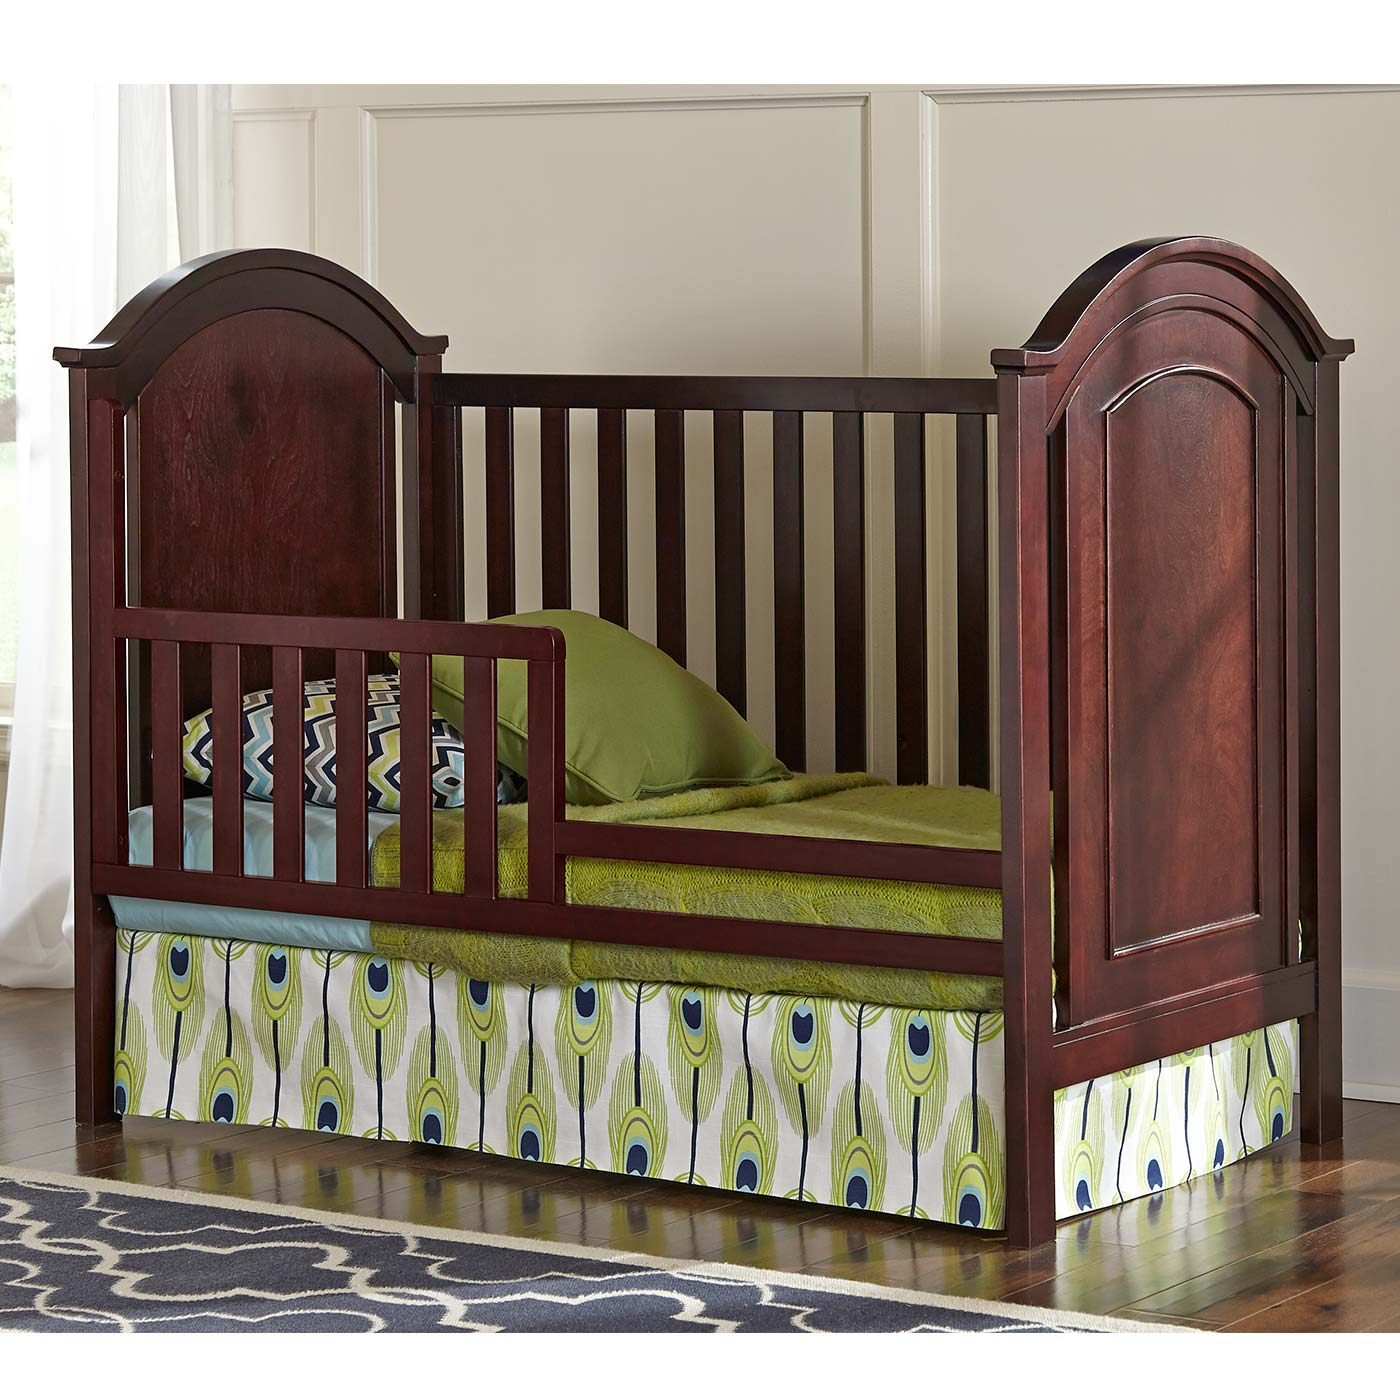 Baby bed furniture - Baby Bed Furniture 53